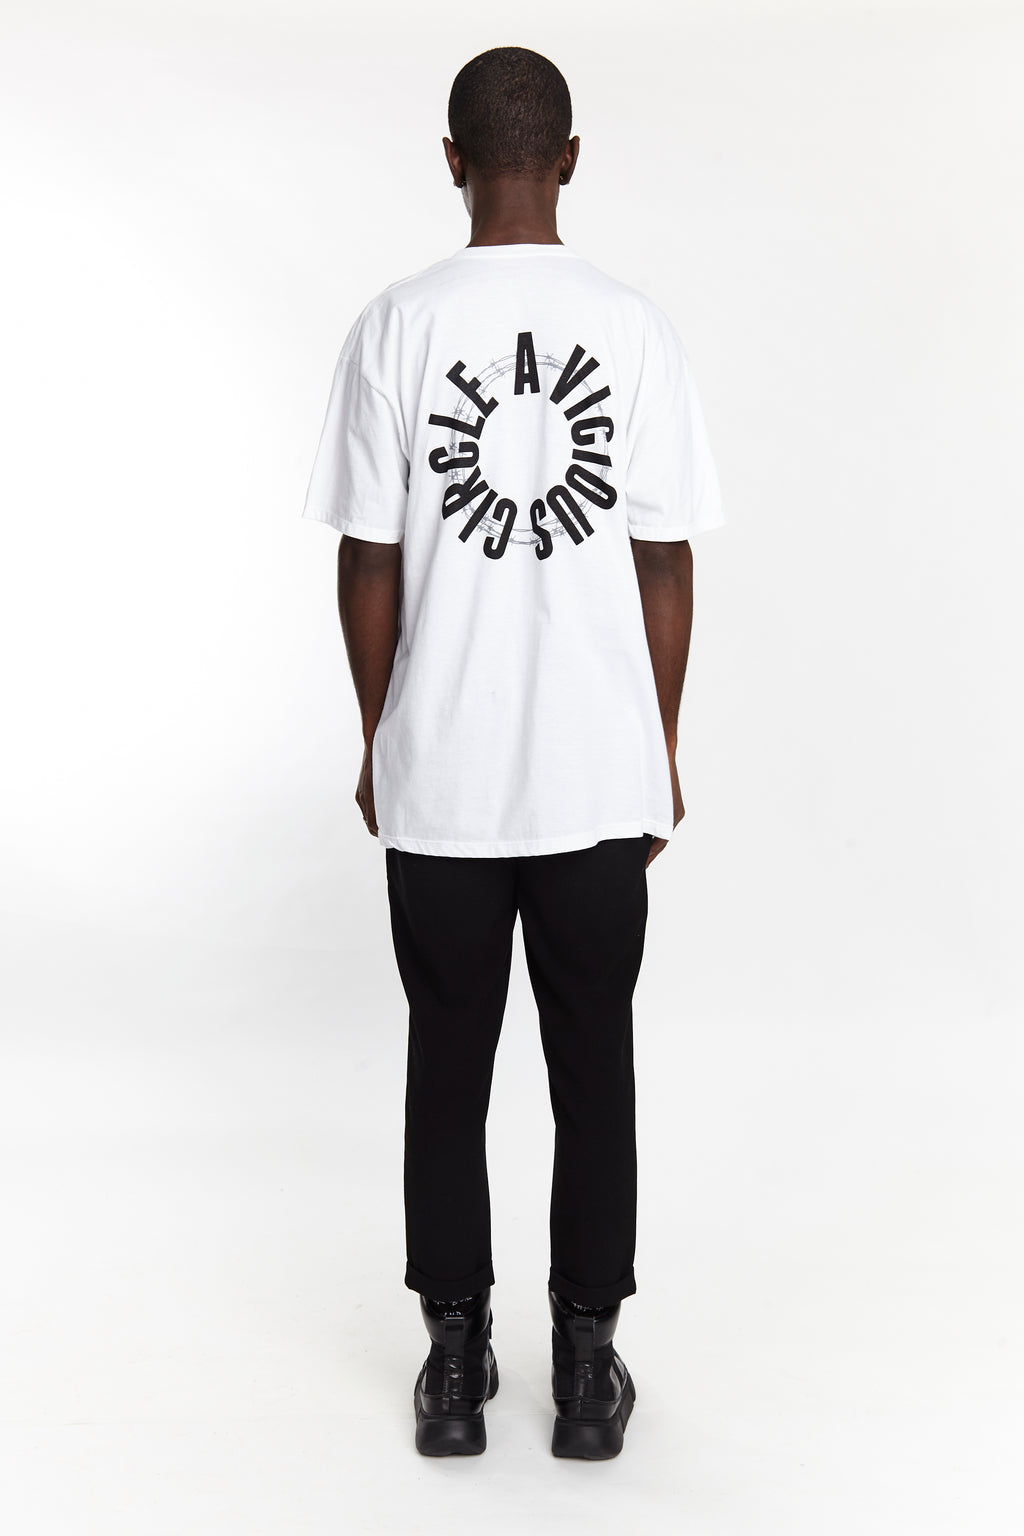 VICIOUS CIRCLE TEE WHITE - HIP AND BONE